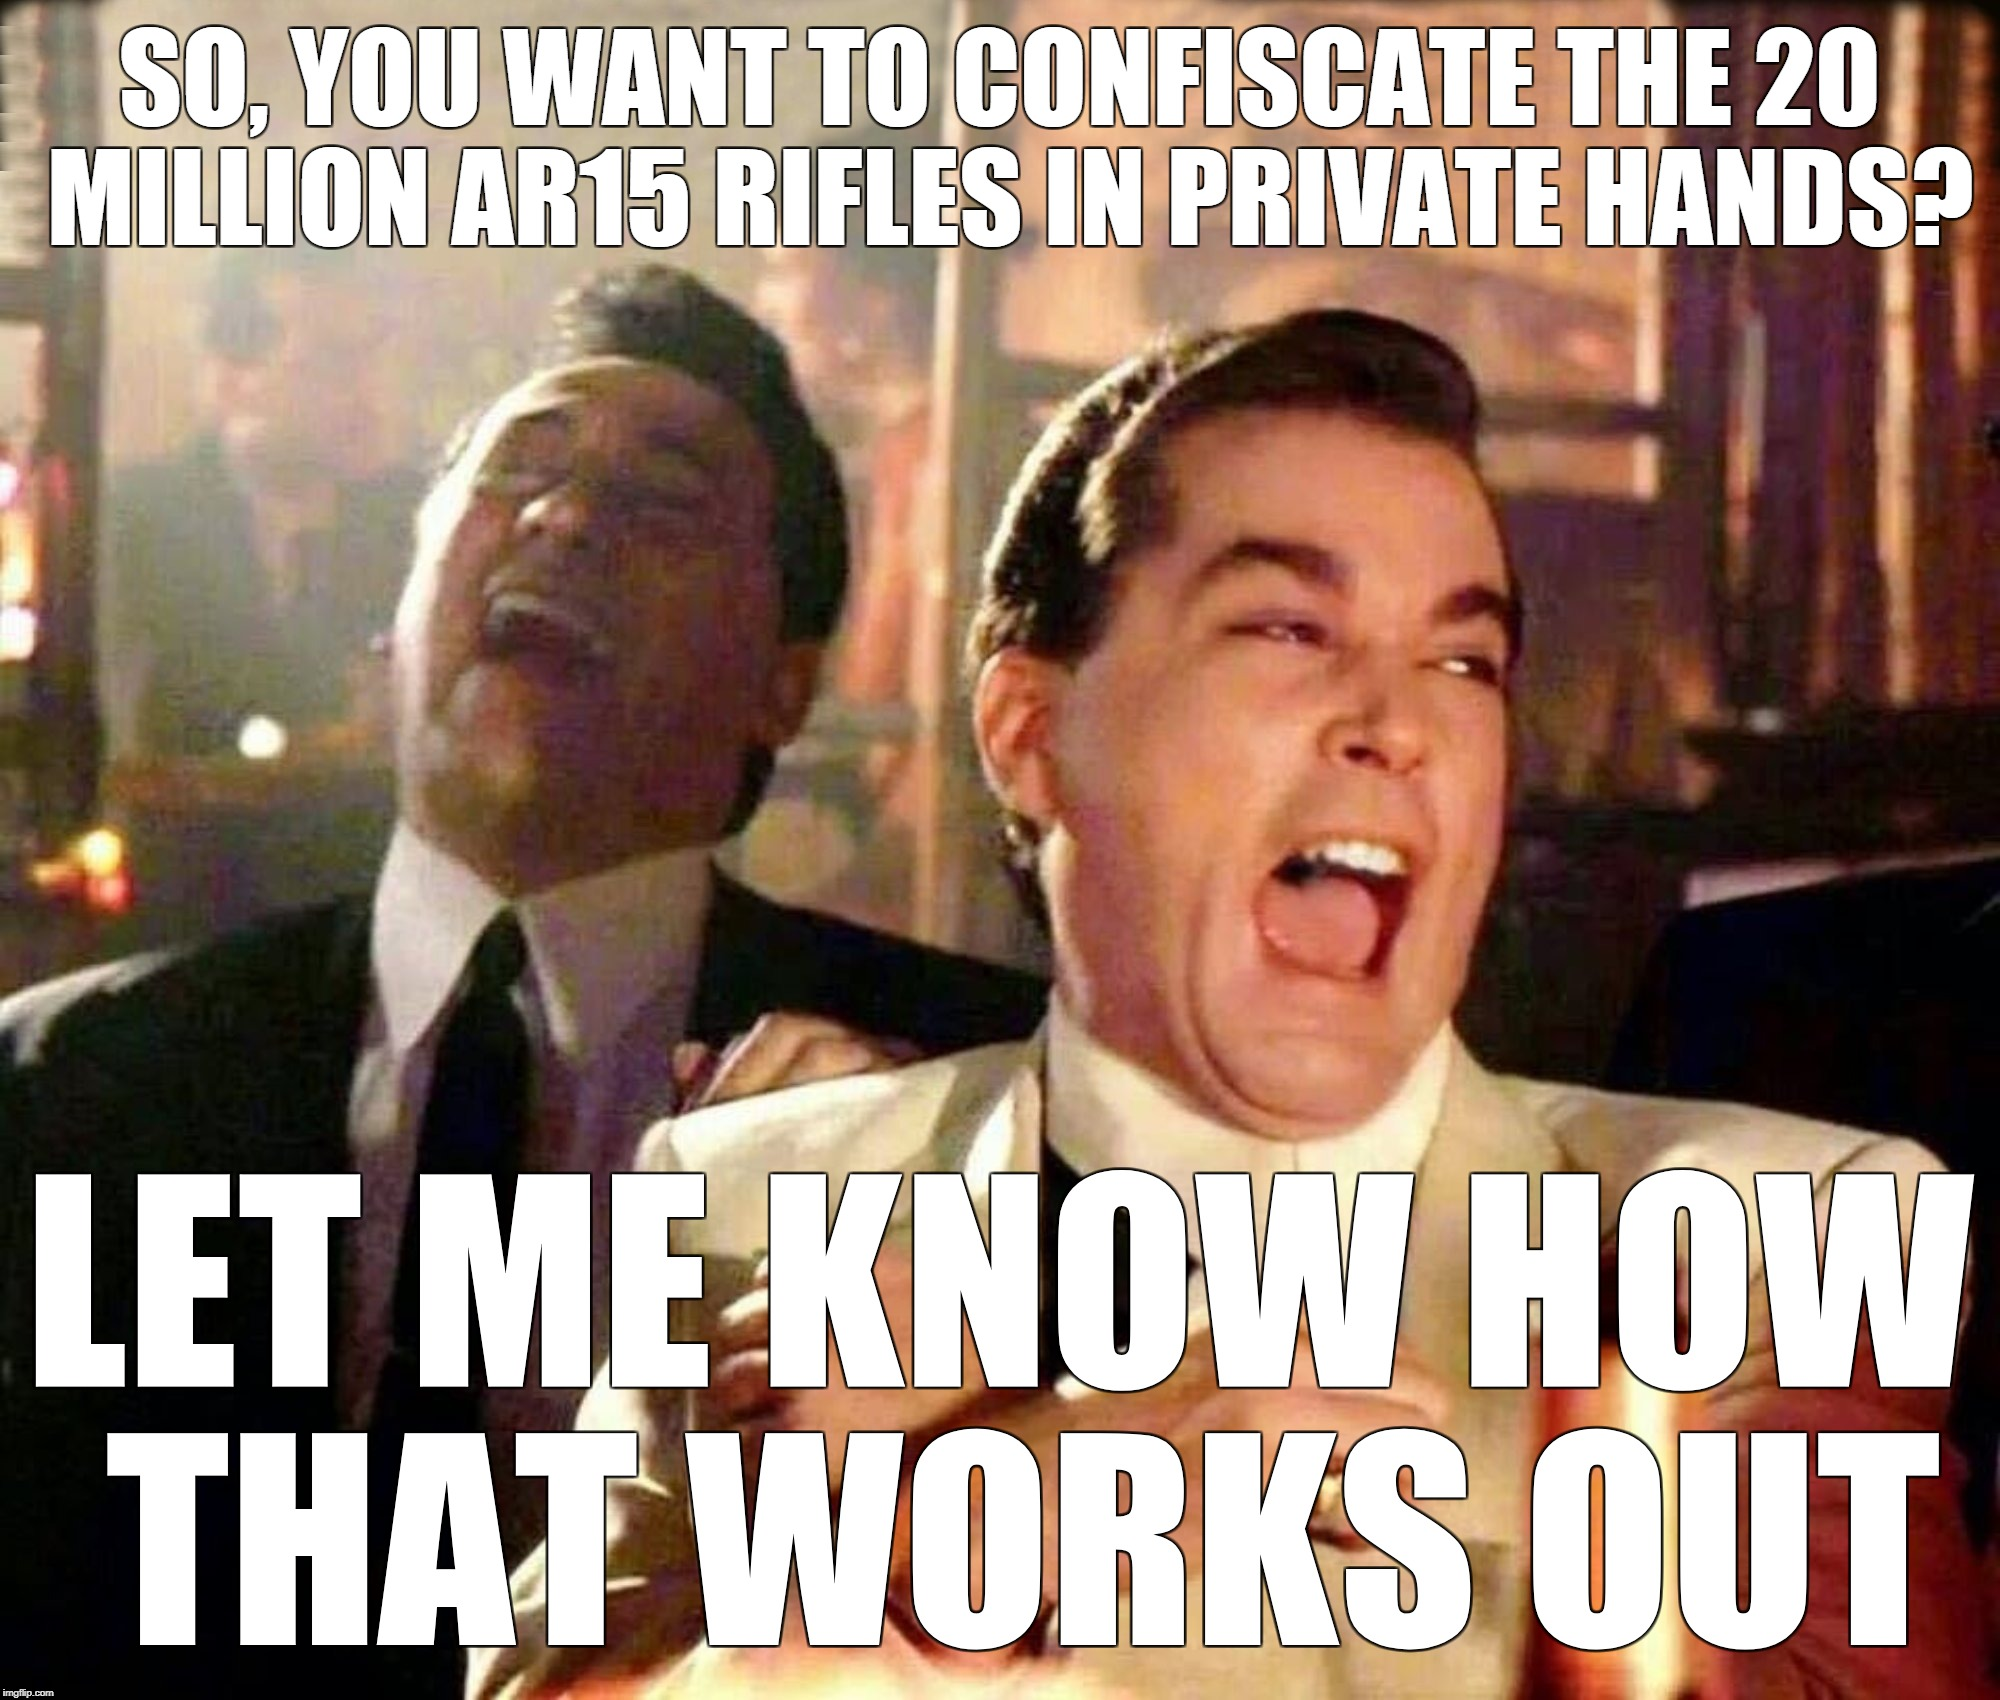 Liotta-Improved | SO, YOU WANT TO CONFISCATE THE 20 MILLION AR15 RIFLES IN PRIVATE HANDS? LET ME KNOW HOW THAT WORKS OUT | image tagged in liotta-improved | made w/ Imgflip meme maker